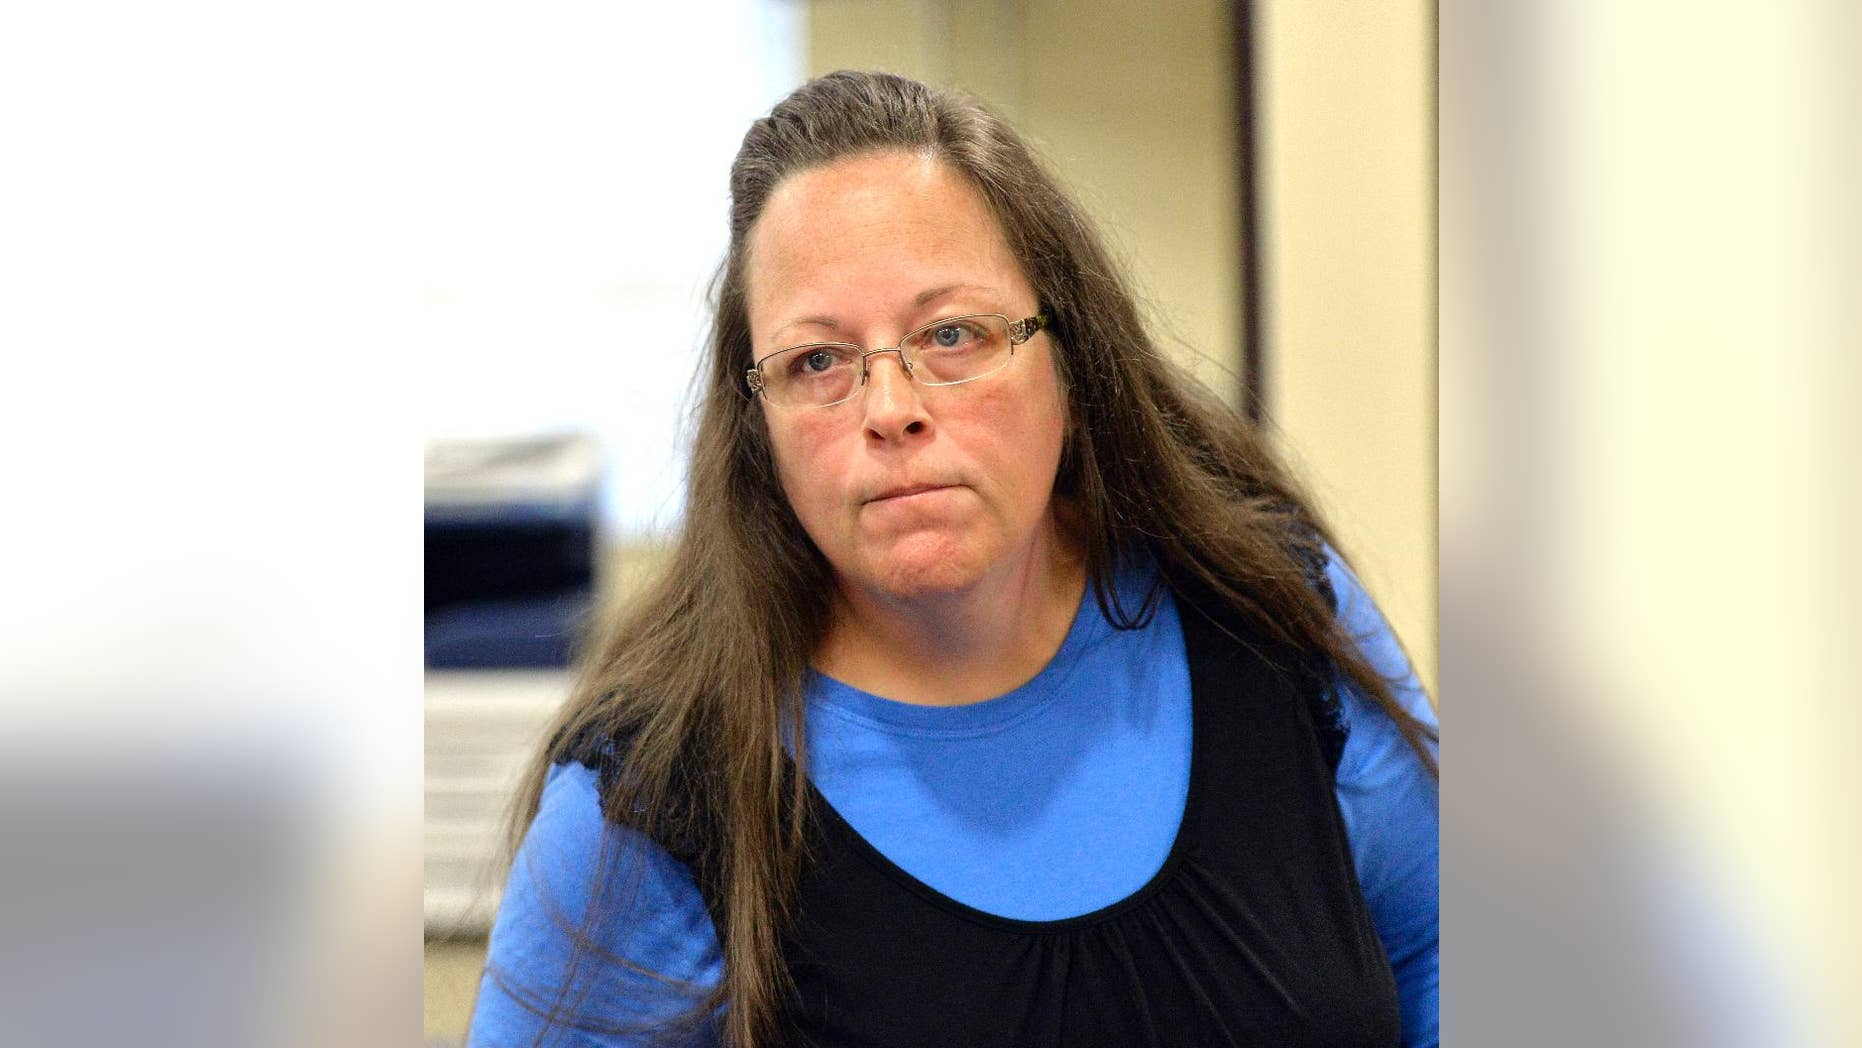 Rowan County Clerk Kim Davis listens to a customer following her office's refusal to issue marriage licenses at the Rowan County Courthouse in Morehead, Ky., Tuesday, Sept. 1, 2015. Although her appeal to the U.S. Supreme Court was denied, Davis still refuses to issue marriage licenses. (AP Photo/Timothy D. Easley)